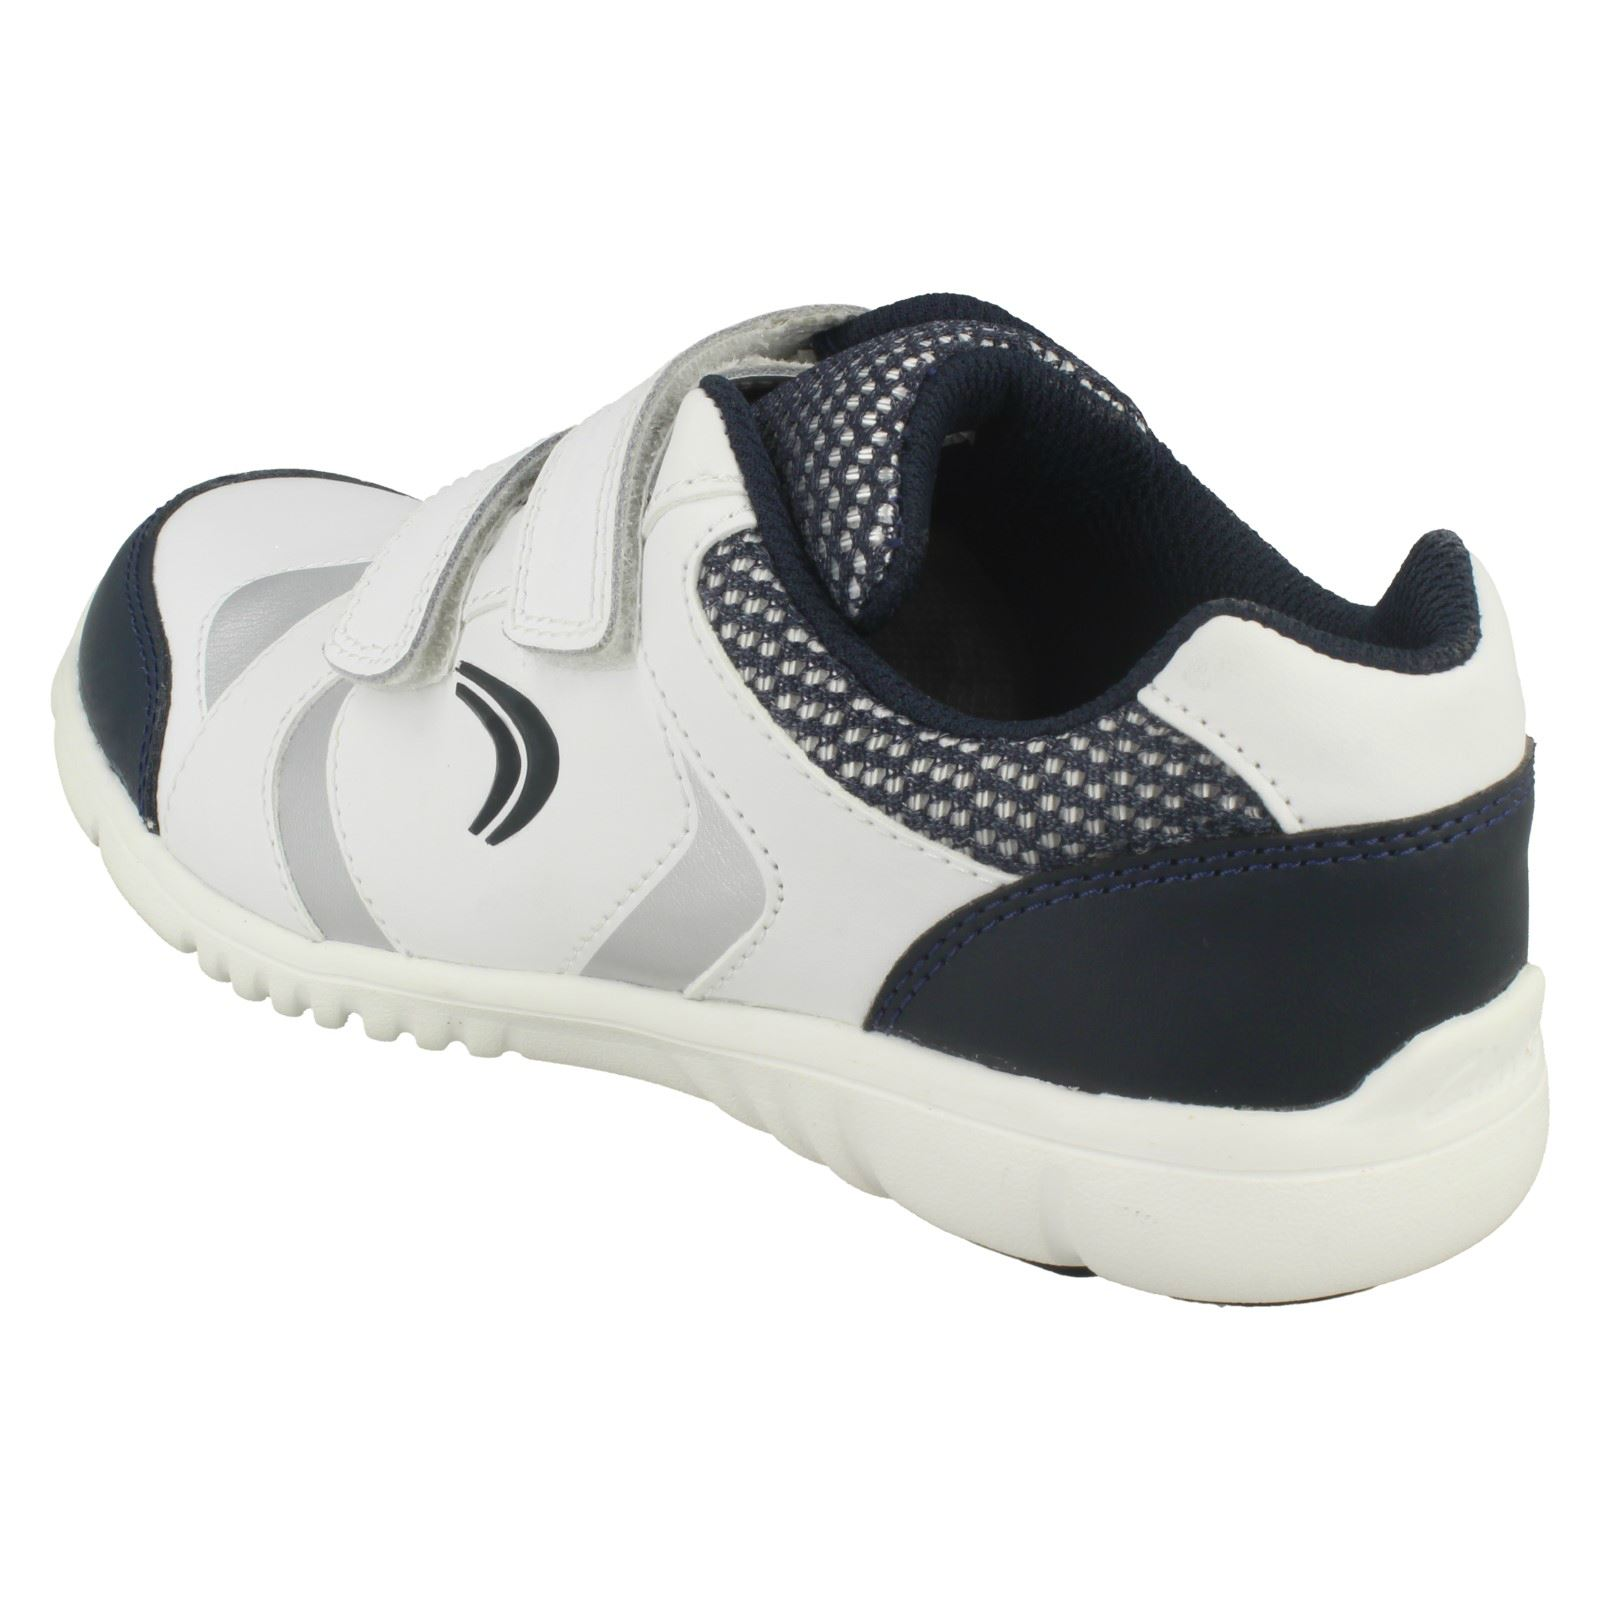 Boys Clarks Leather Sports Trainers /'Free Club/'